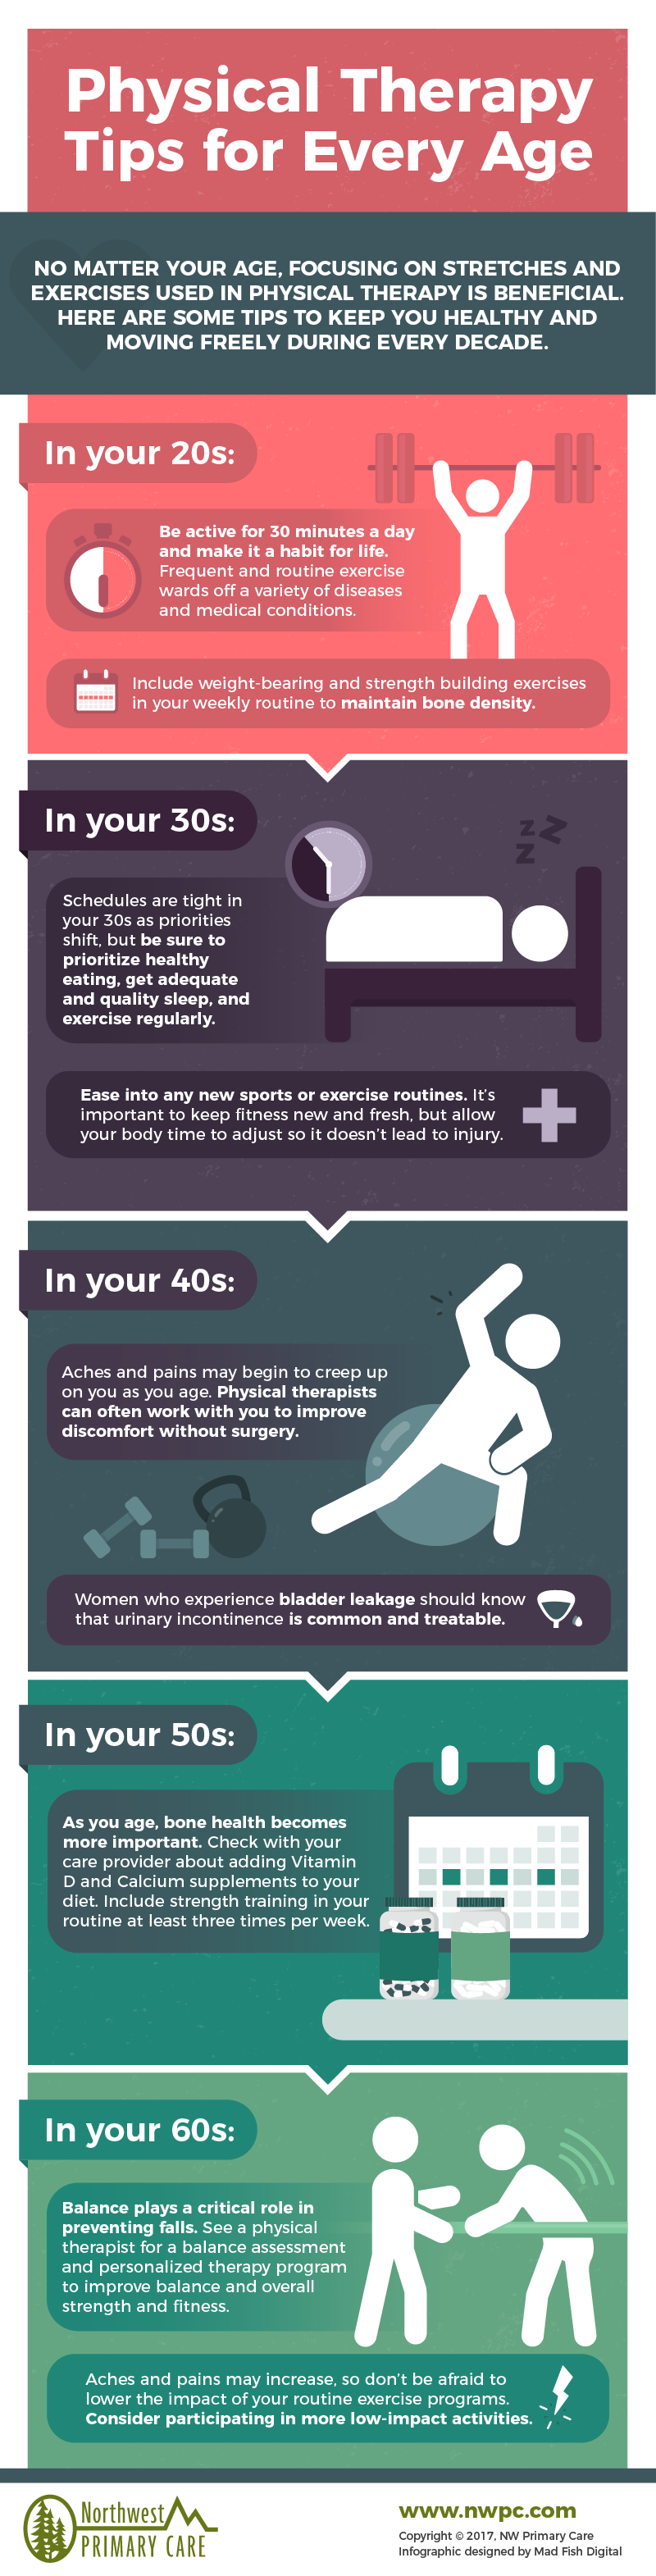 Physical Therapy tips for every age